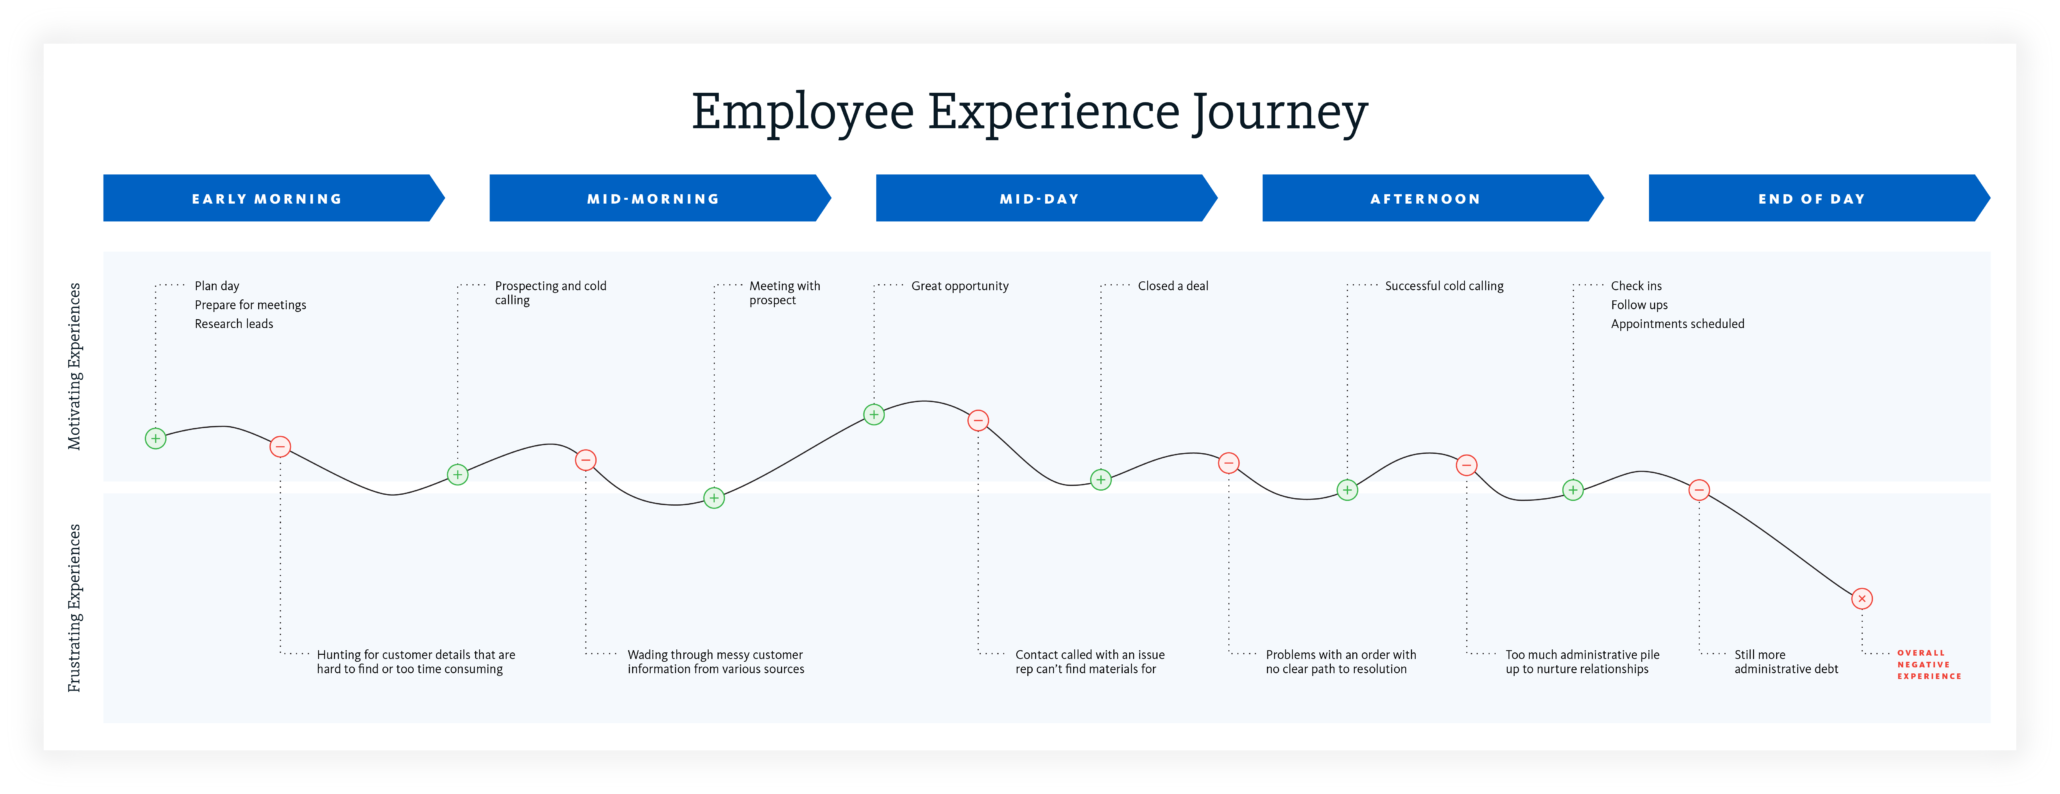 Example employee experience journey map